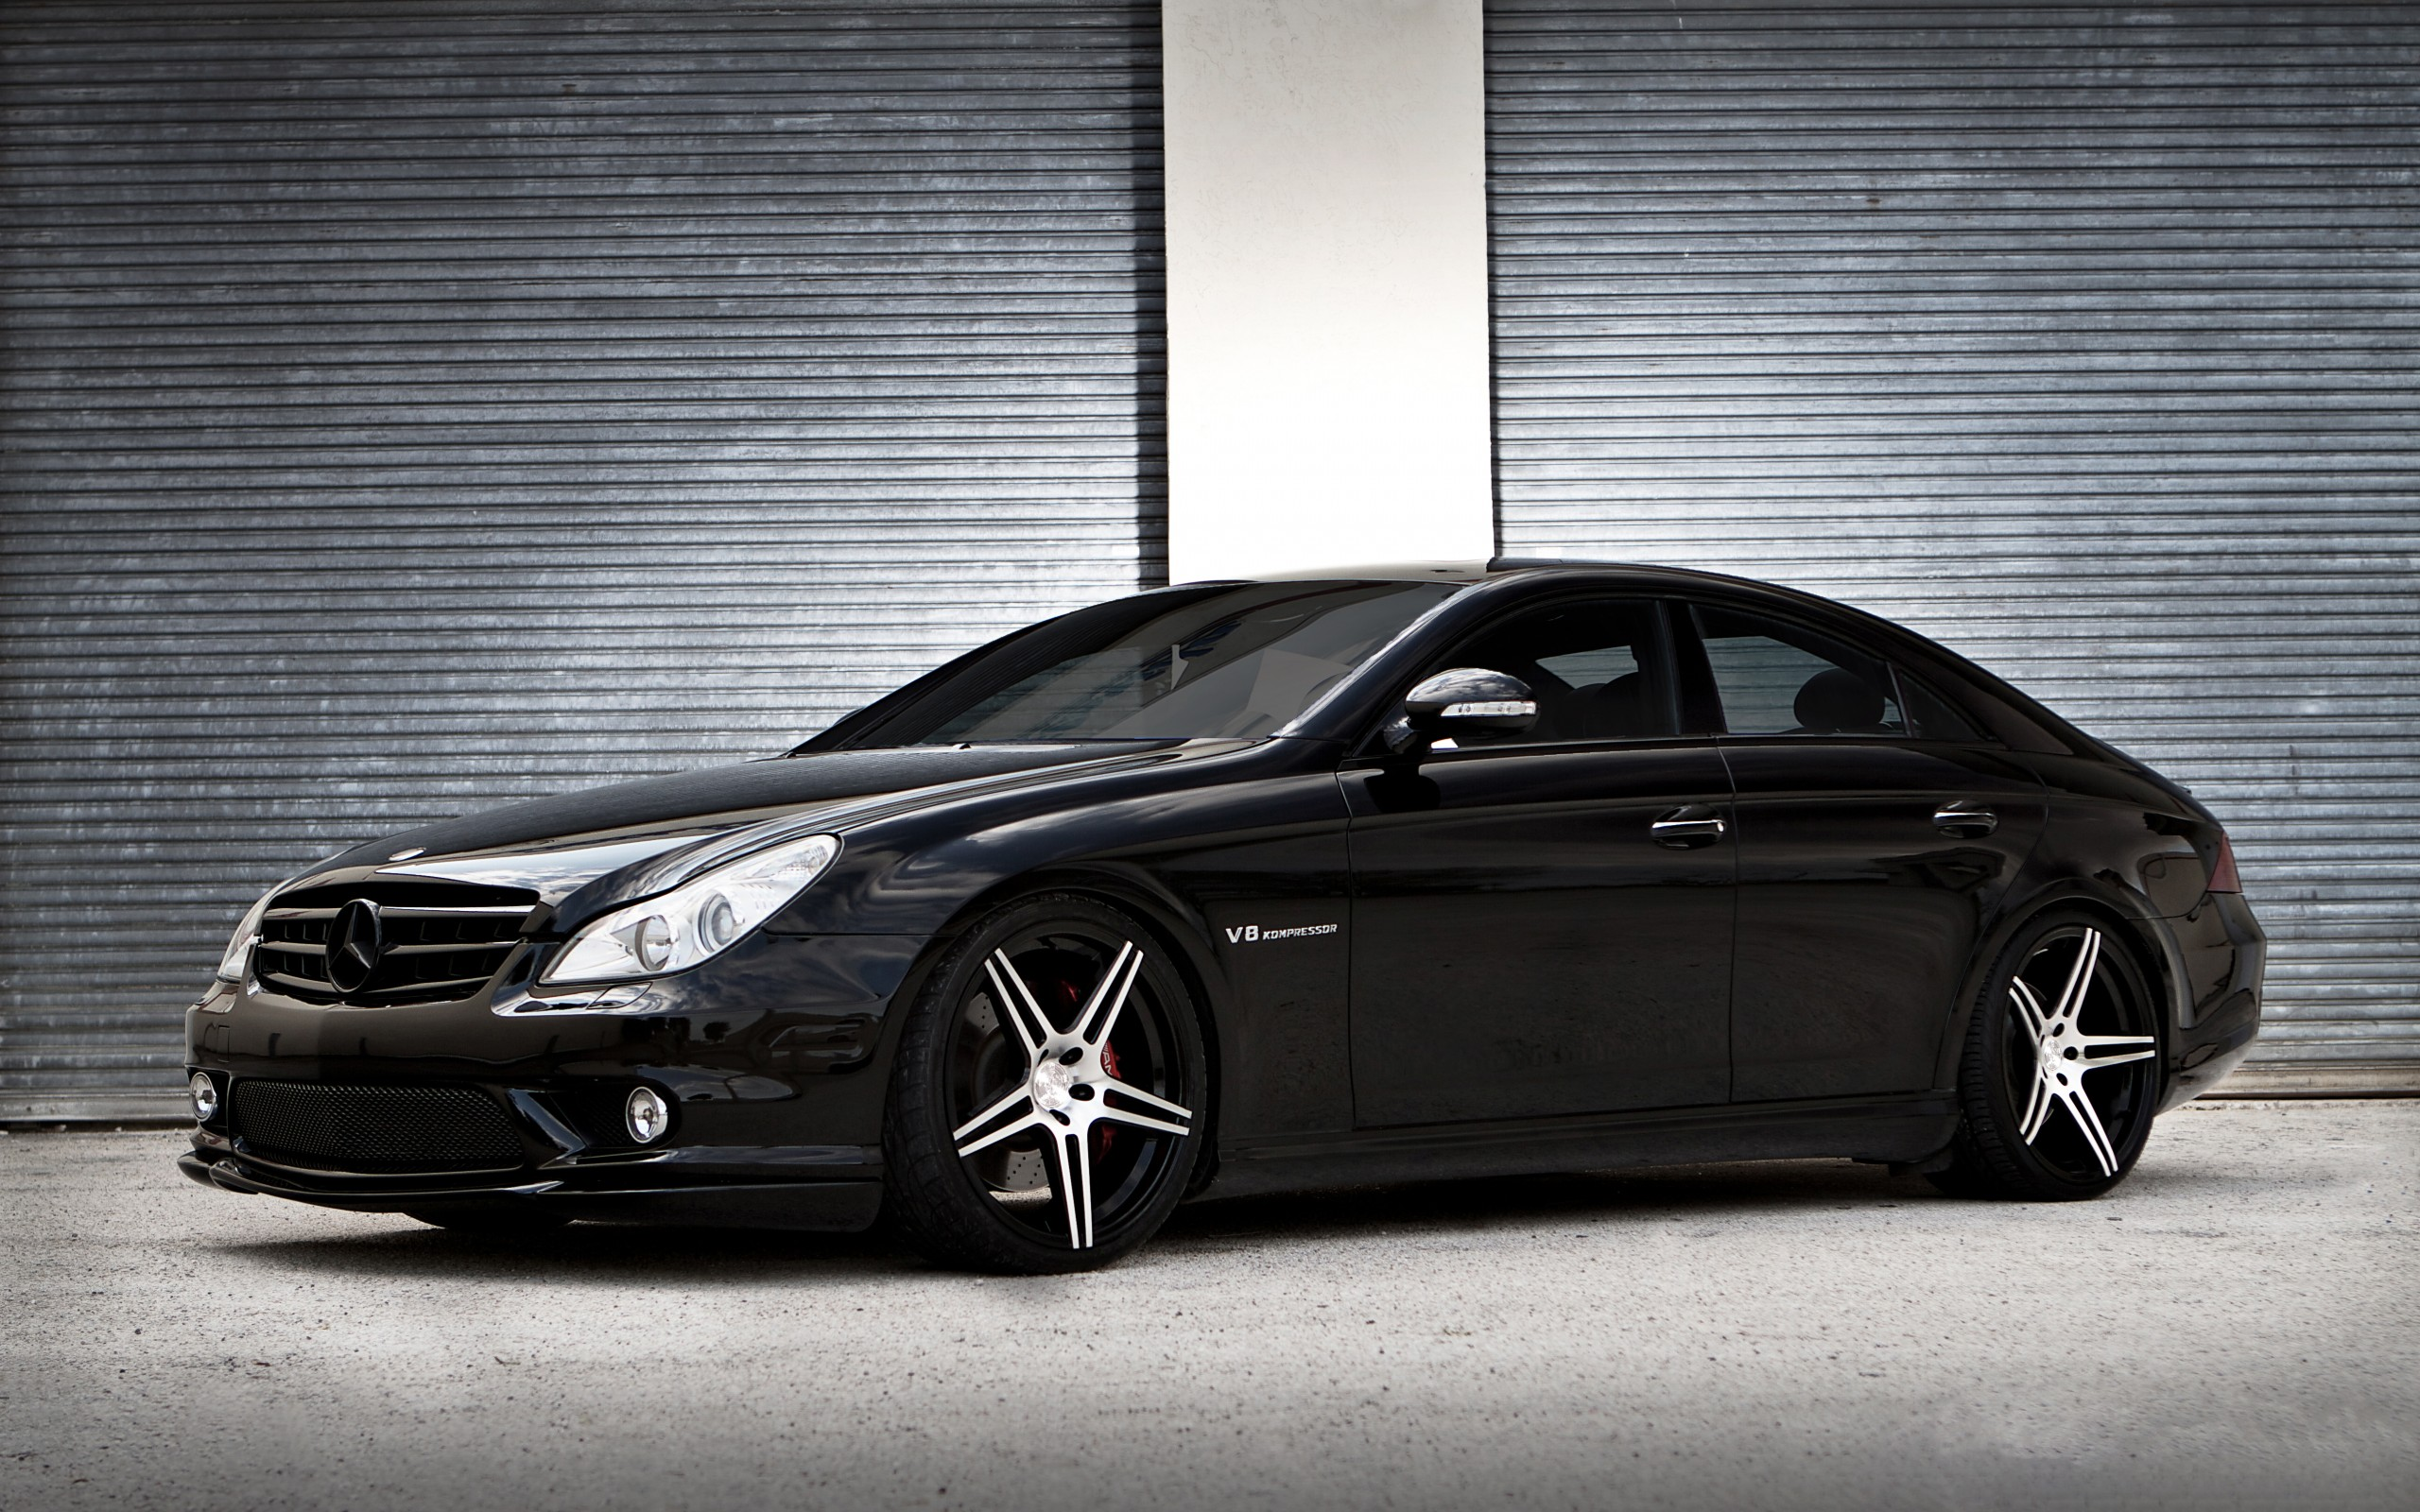 Mercedes Benz CLS55 AMG Wallpaper HD Car Wallpapers 2560x1600